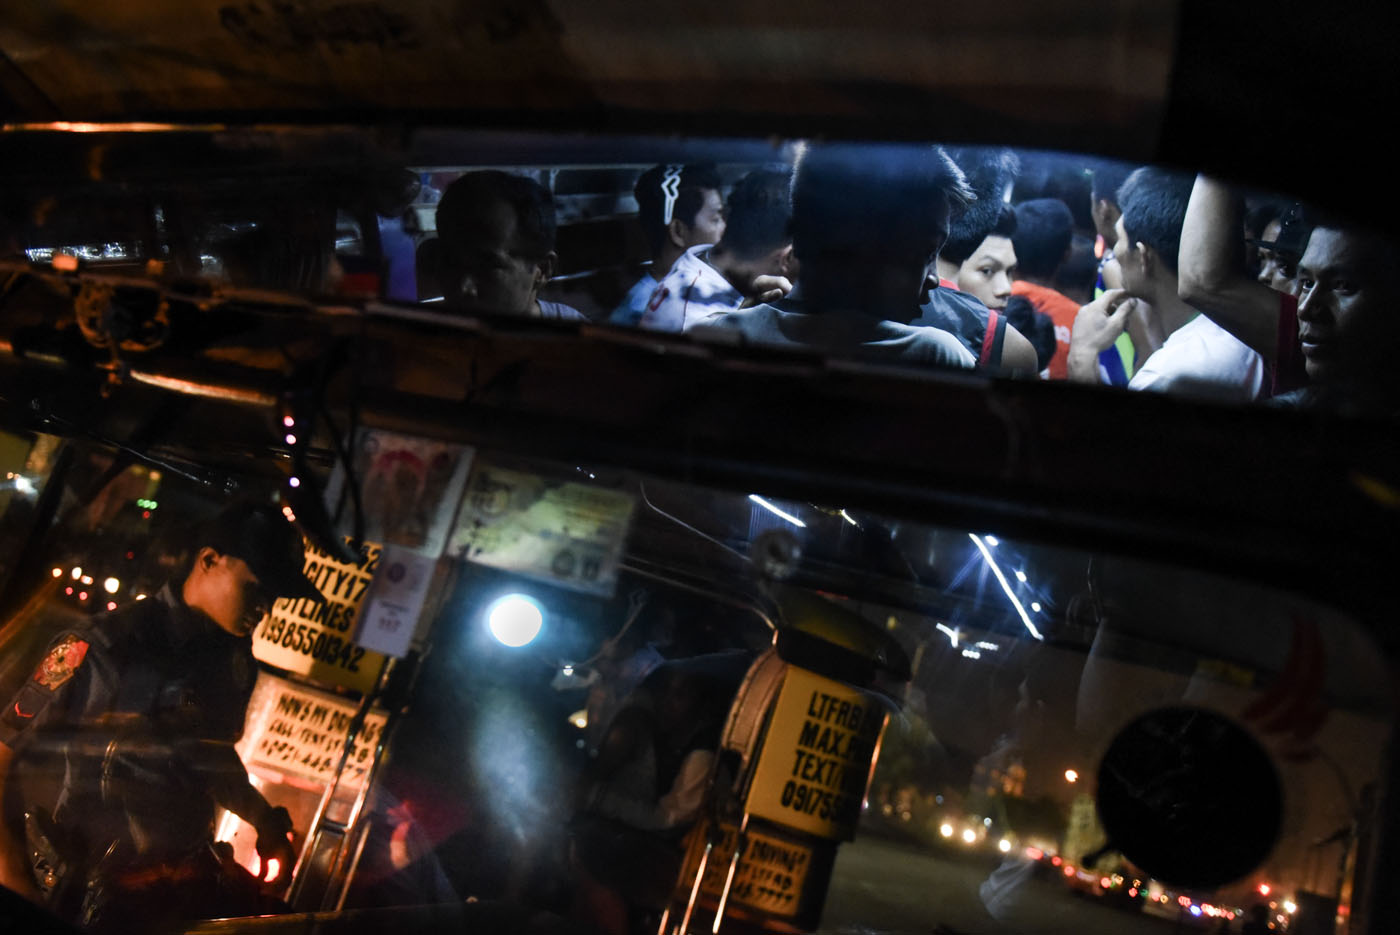 JAMPACKED. More than 20 individuals ride a jeepney meant for only 14 passengers.